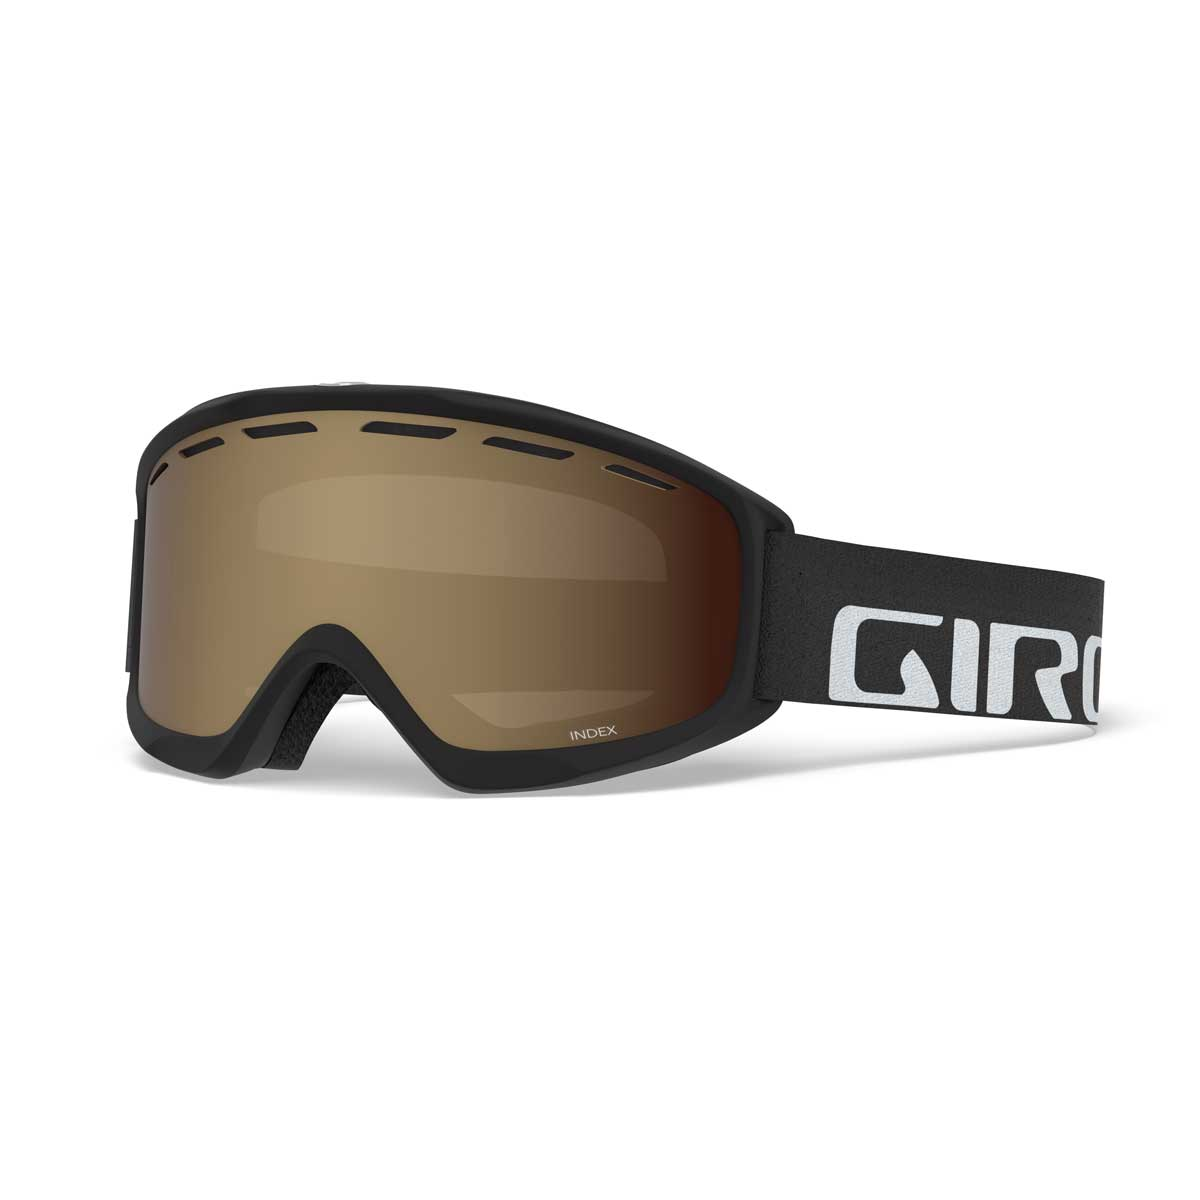 Giro Index Goggle in Black Wordmark with Amber Rose